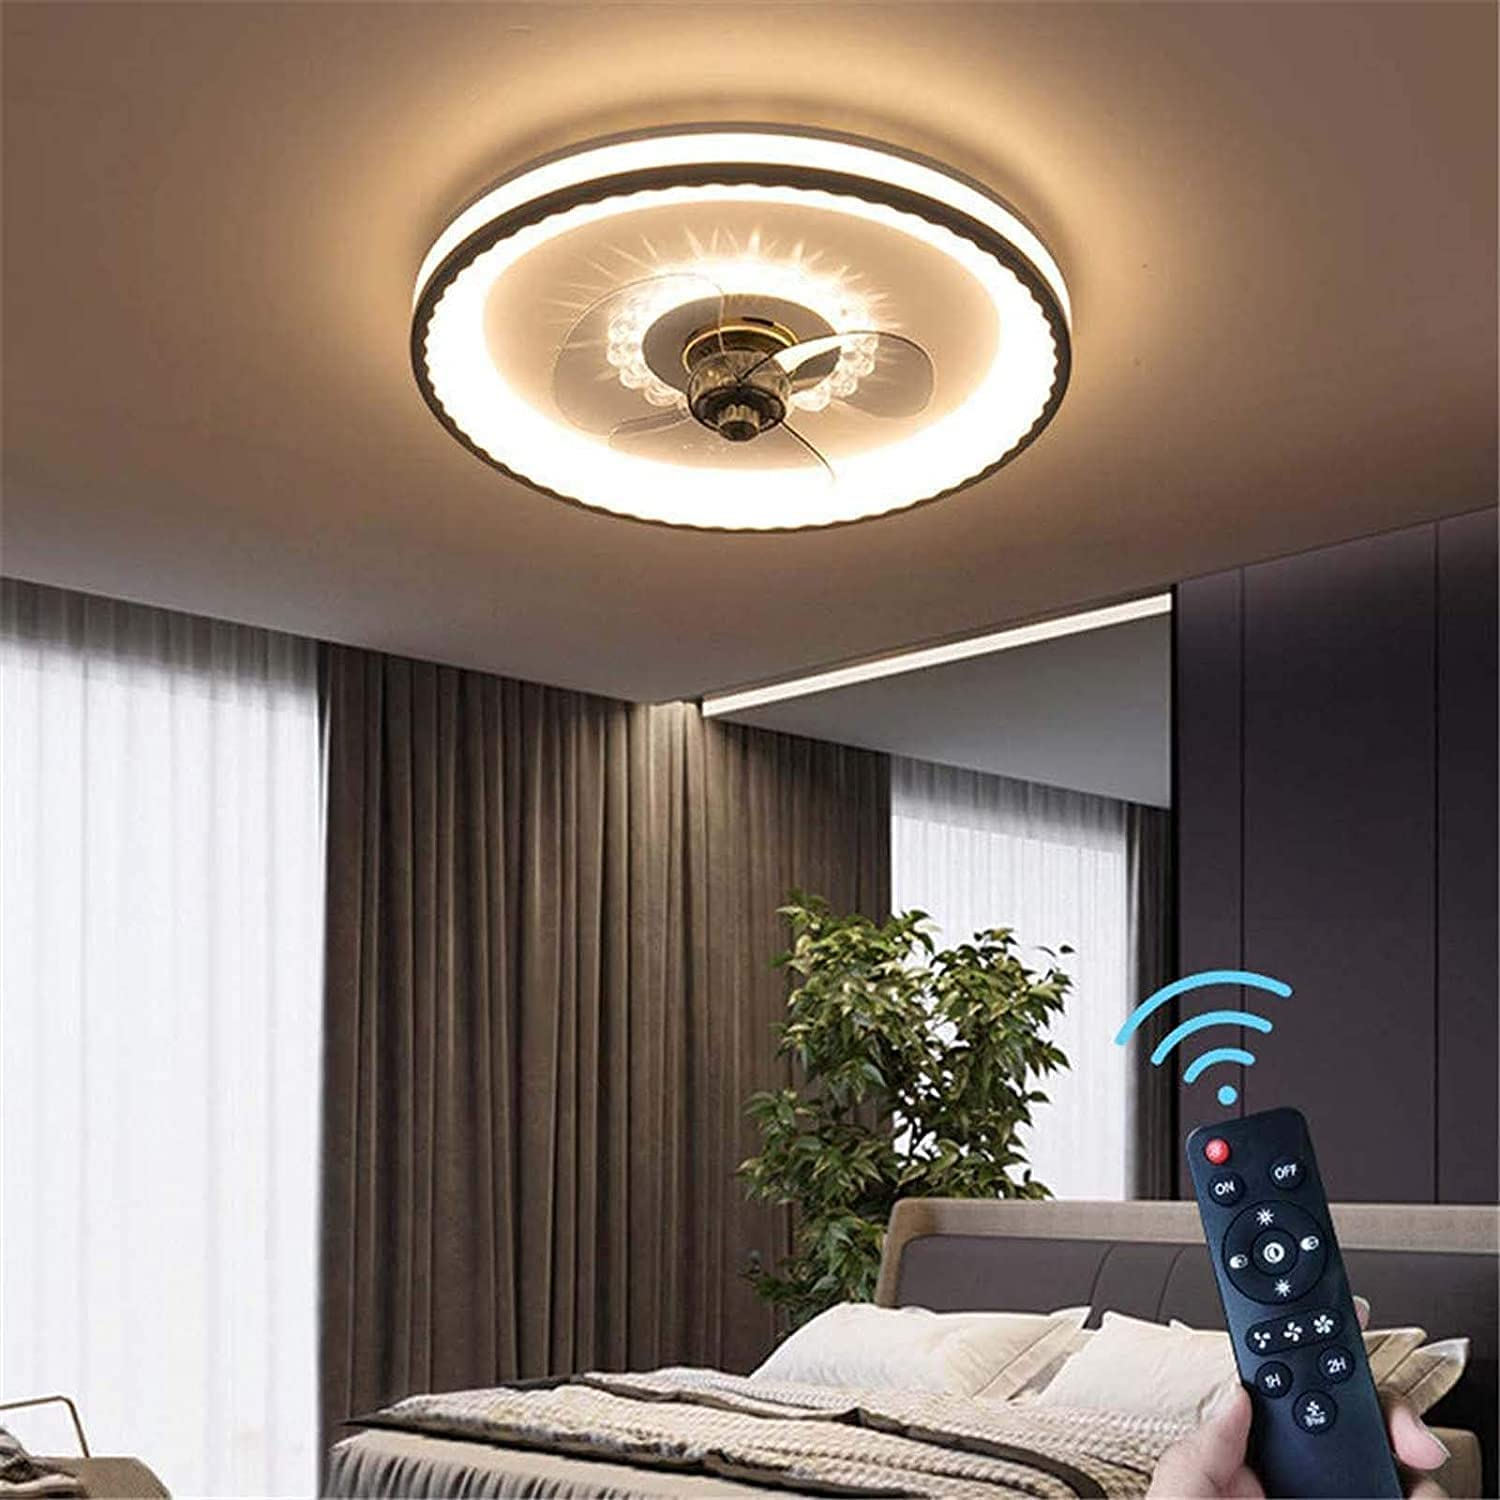 Fan Light with Lighting Acrylic Max 51% OFF Max 90% OFF Dimmable Circular Ceiling